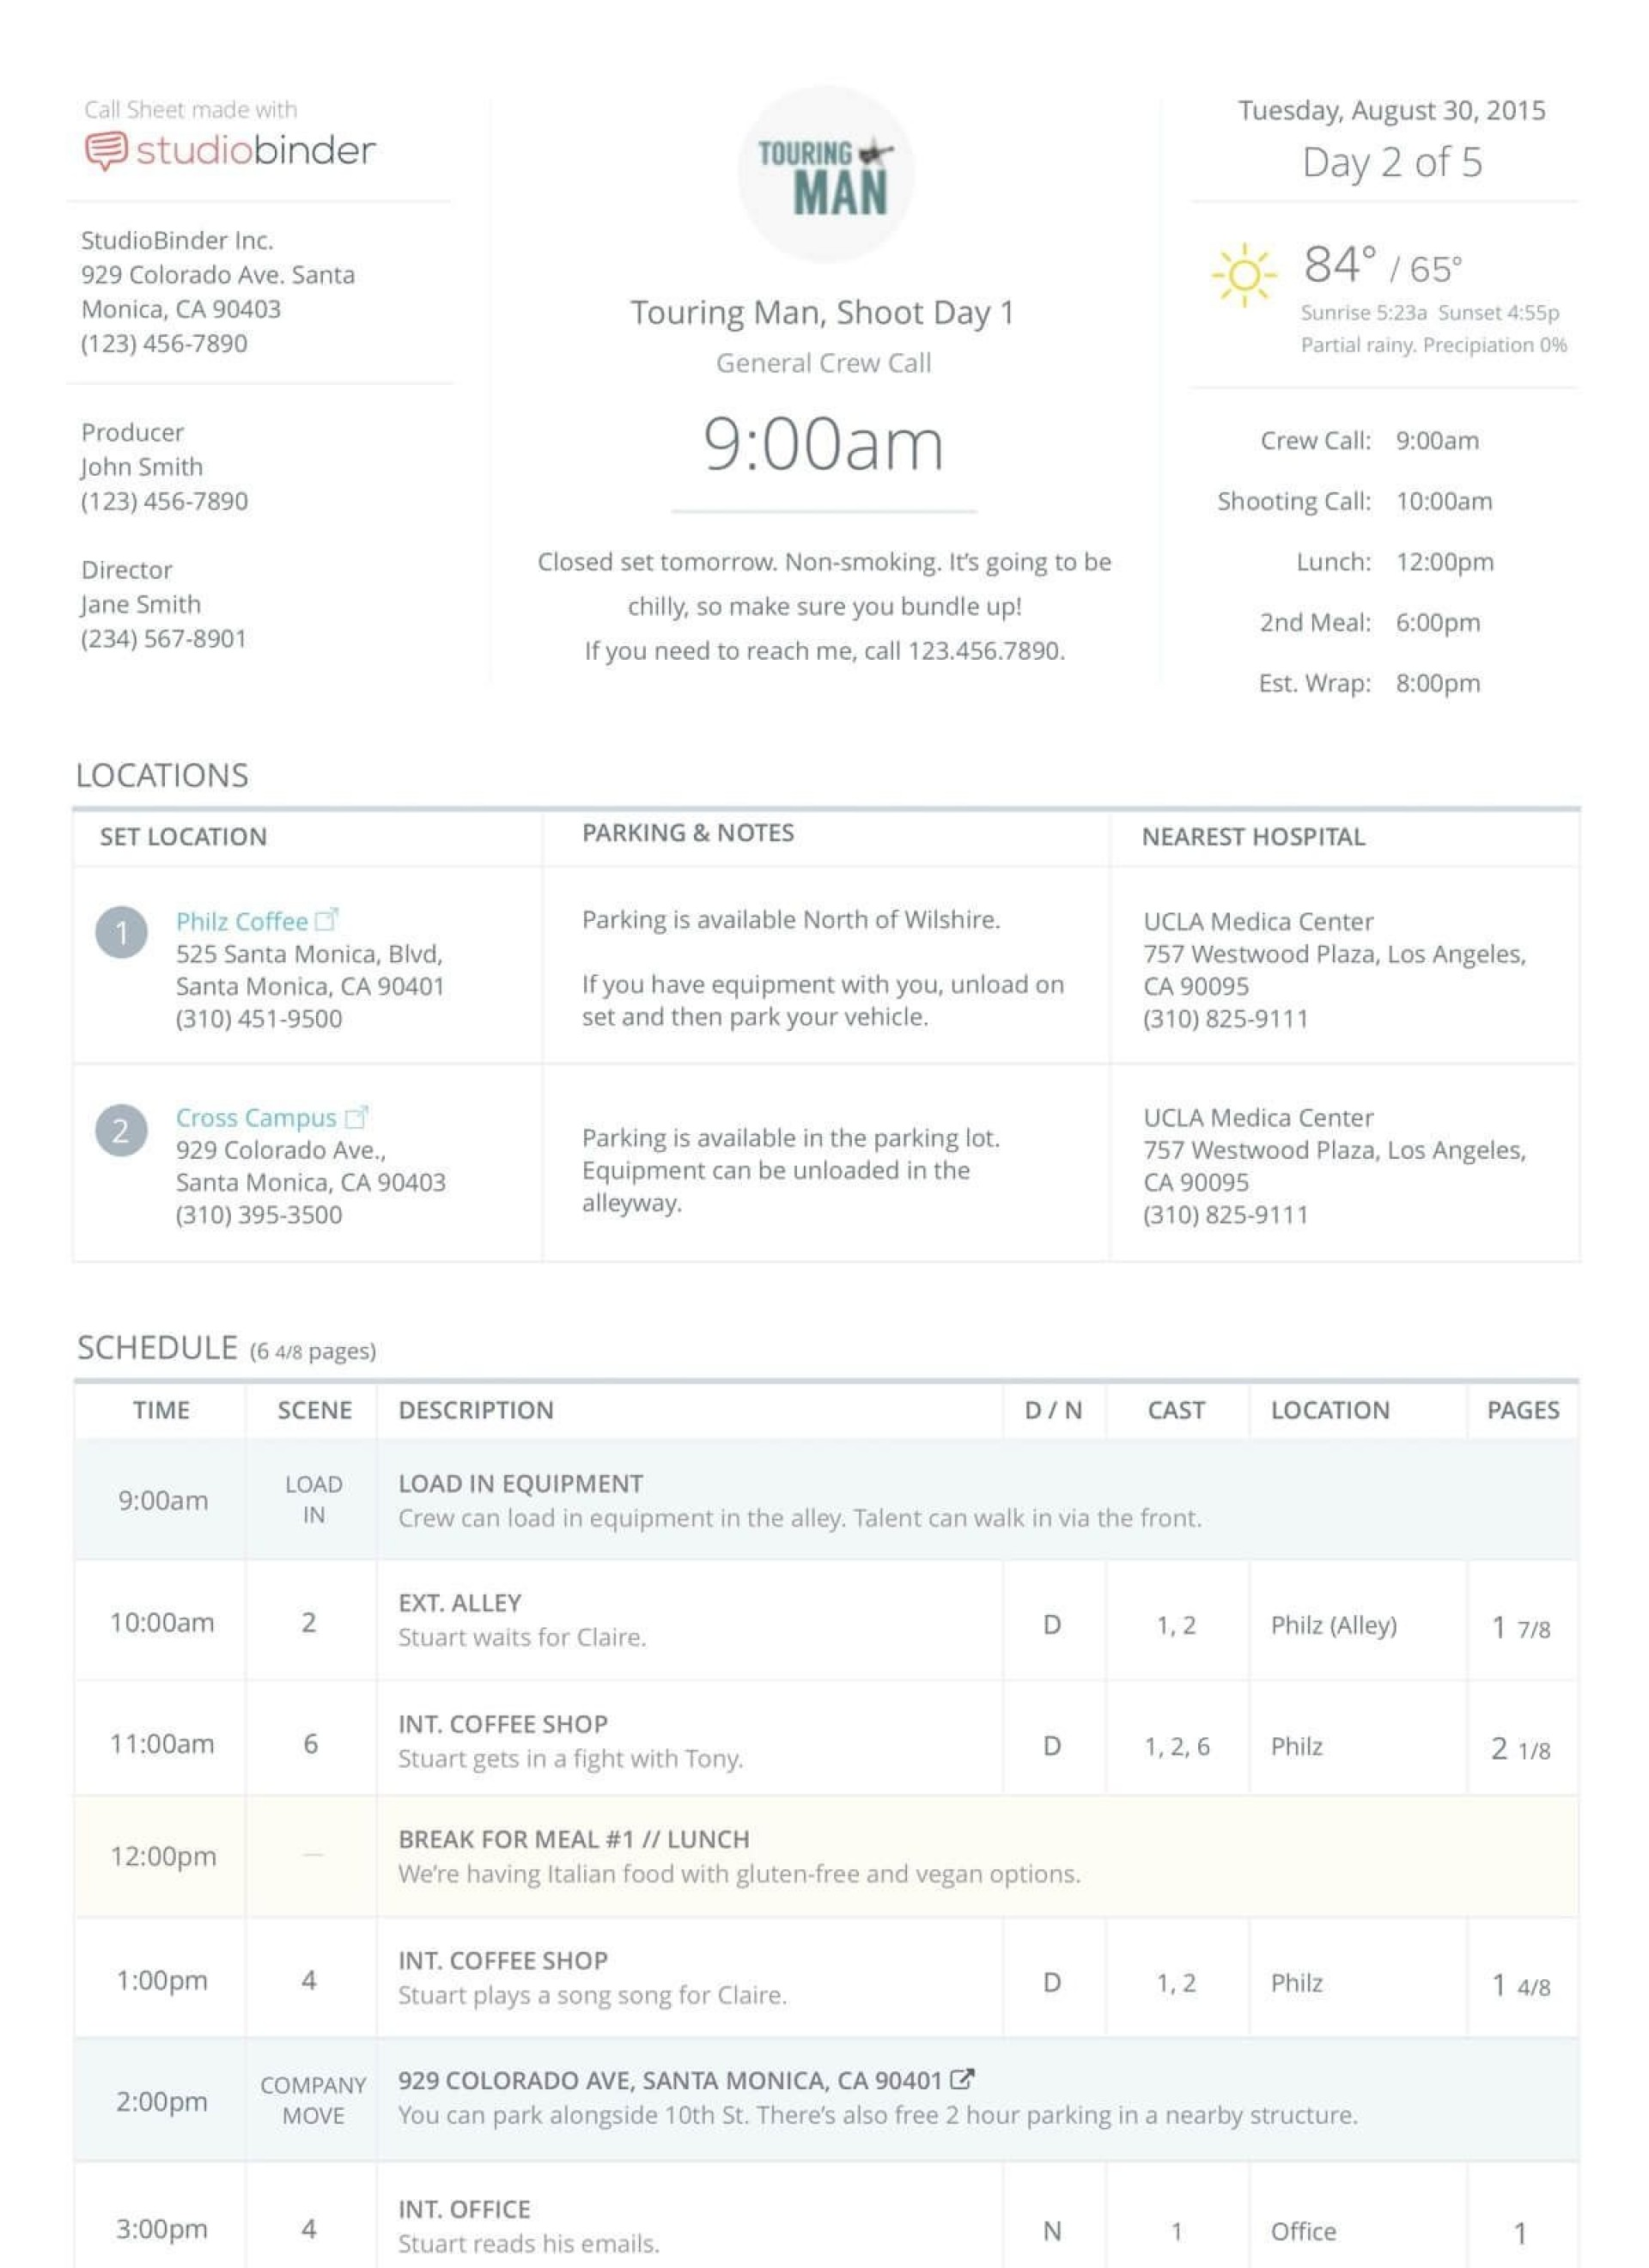 009 Top Film Call Sheet Format Concept  Production Template Student1920